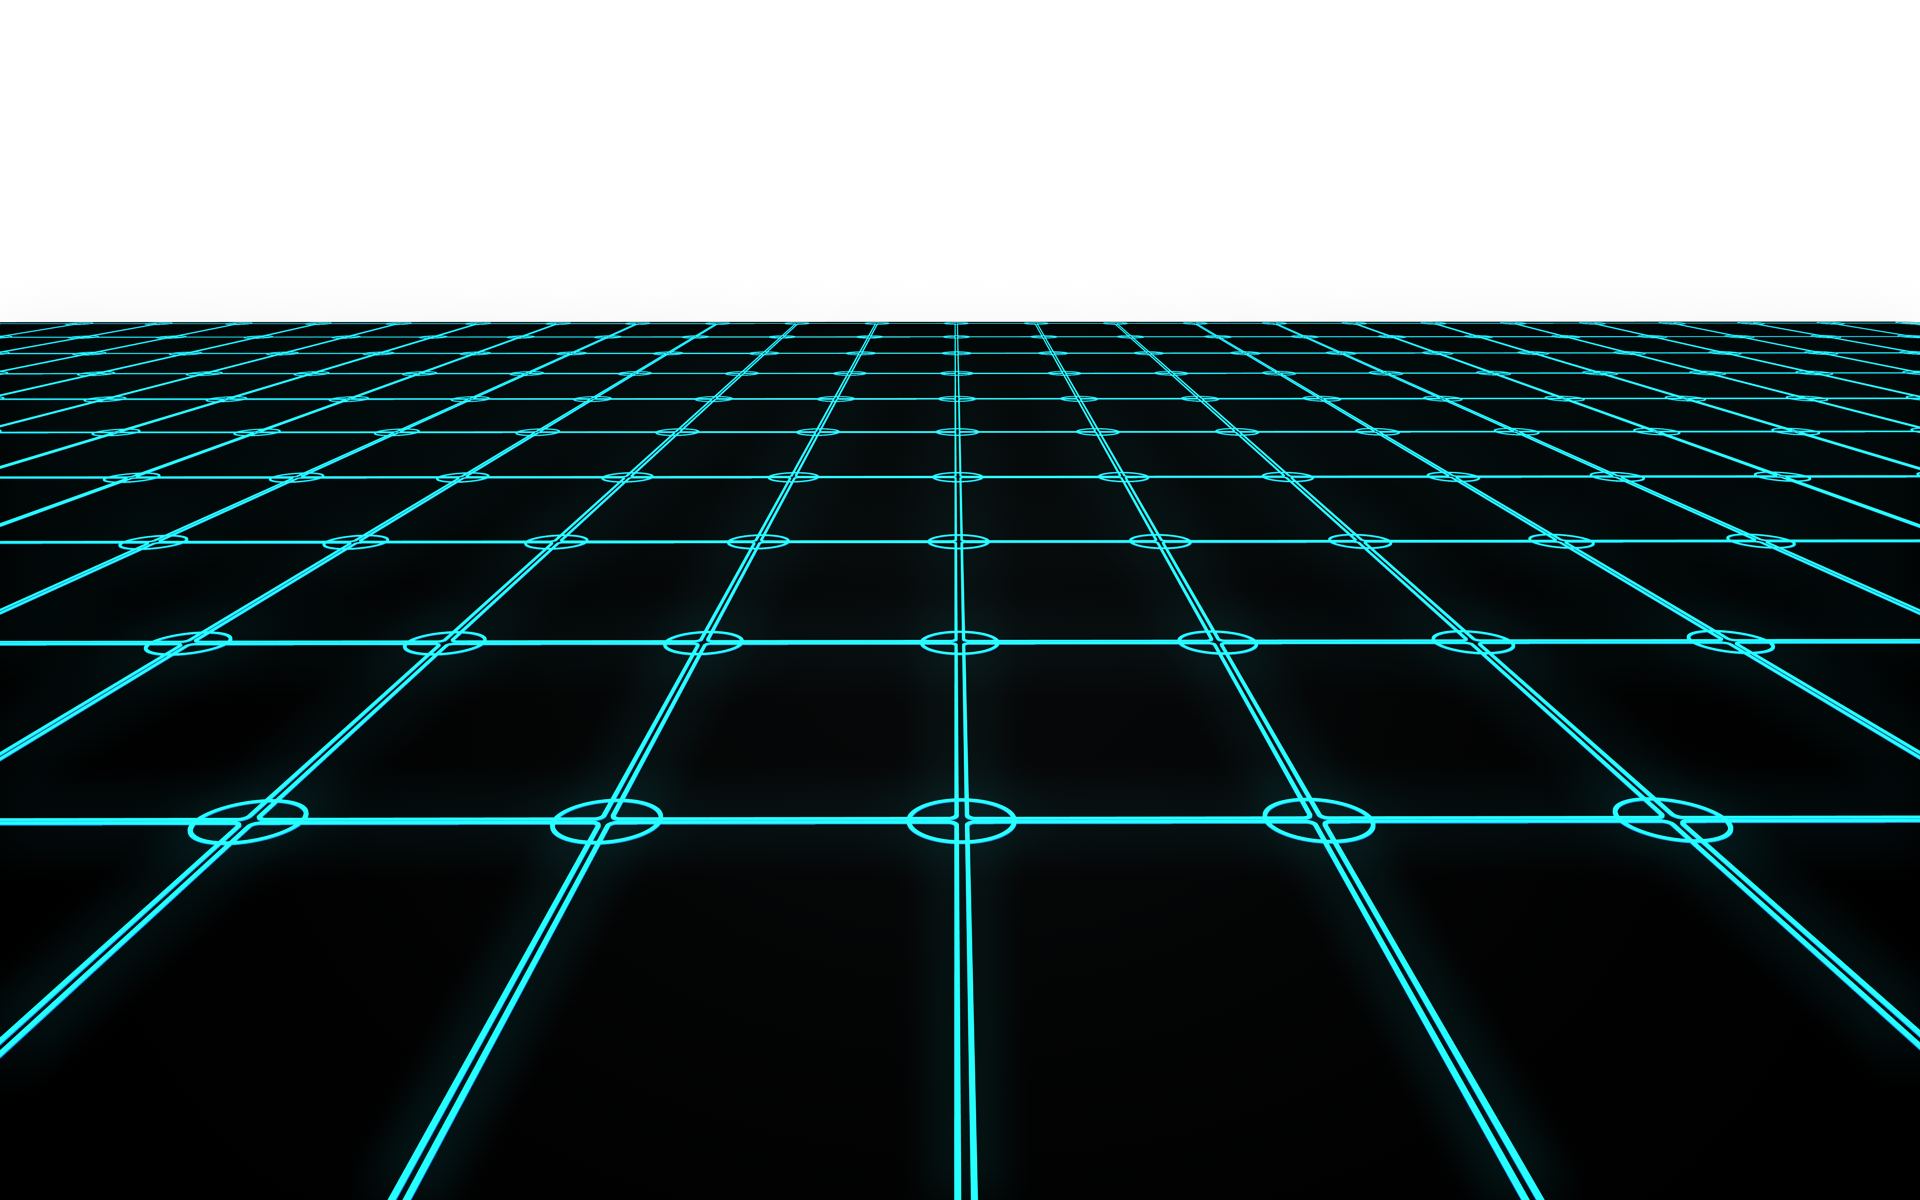 Another Tron Type Floor By Taz09 On Deviantart Tron Framed Wallpaper Tron Legacy